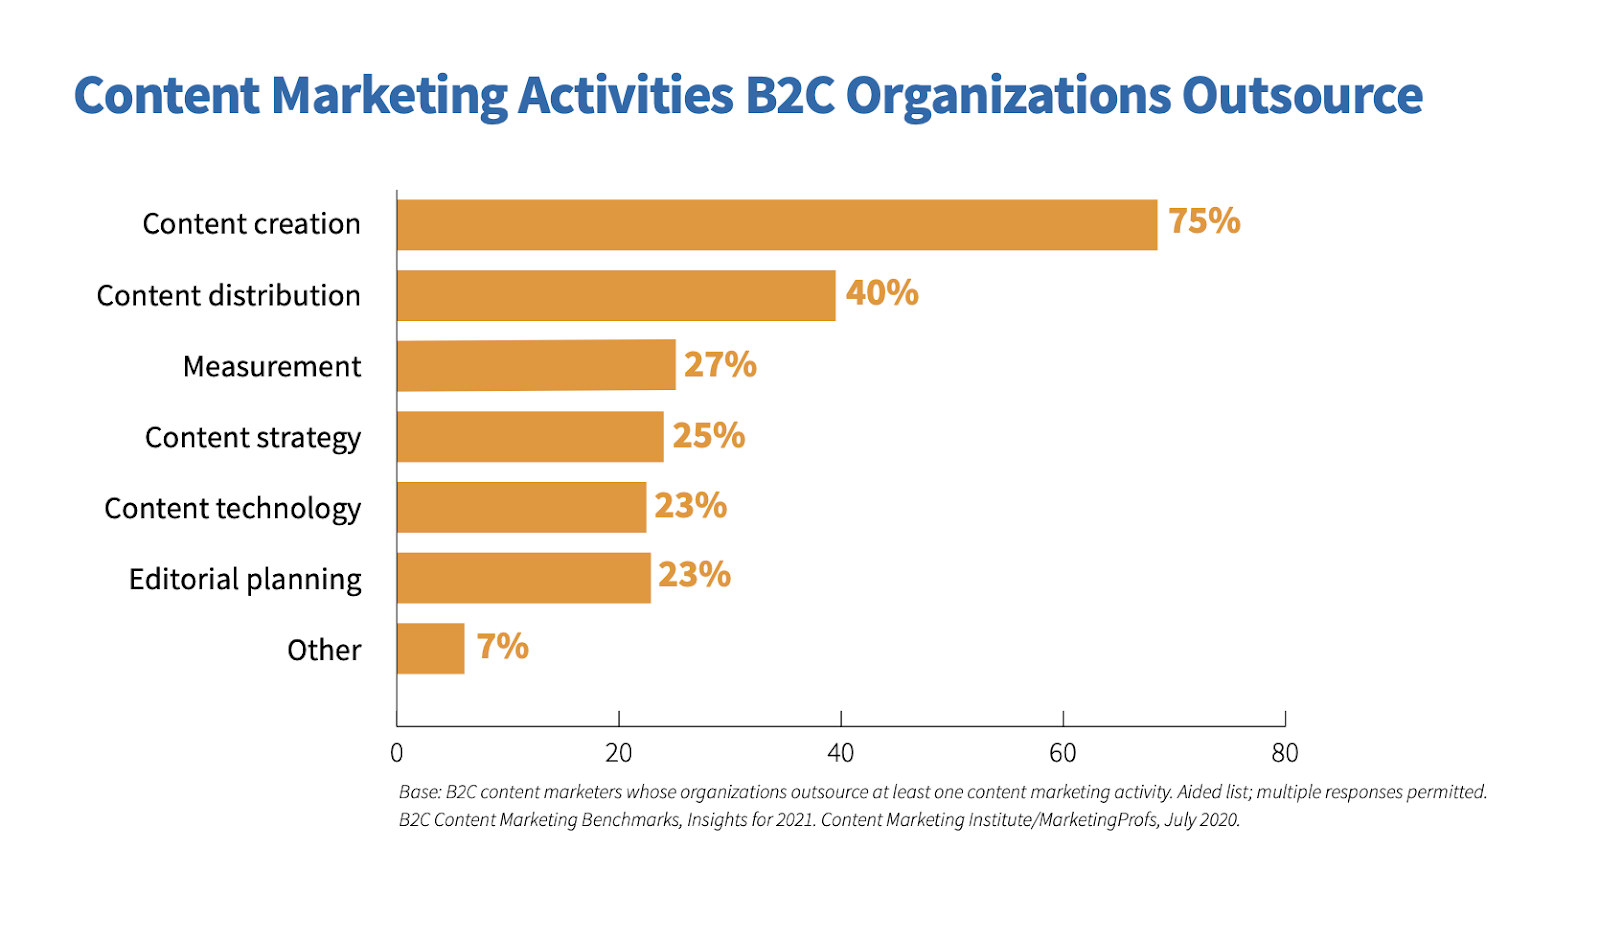 B2C Content Marketing Activties Outsourced